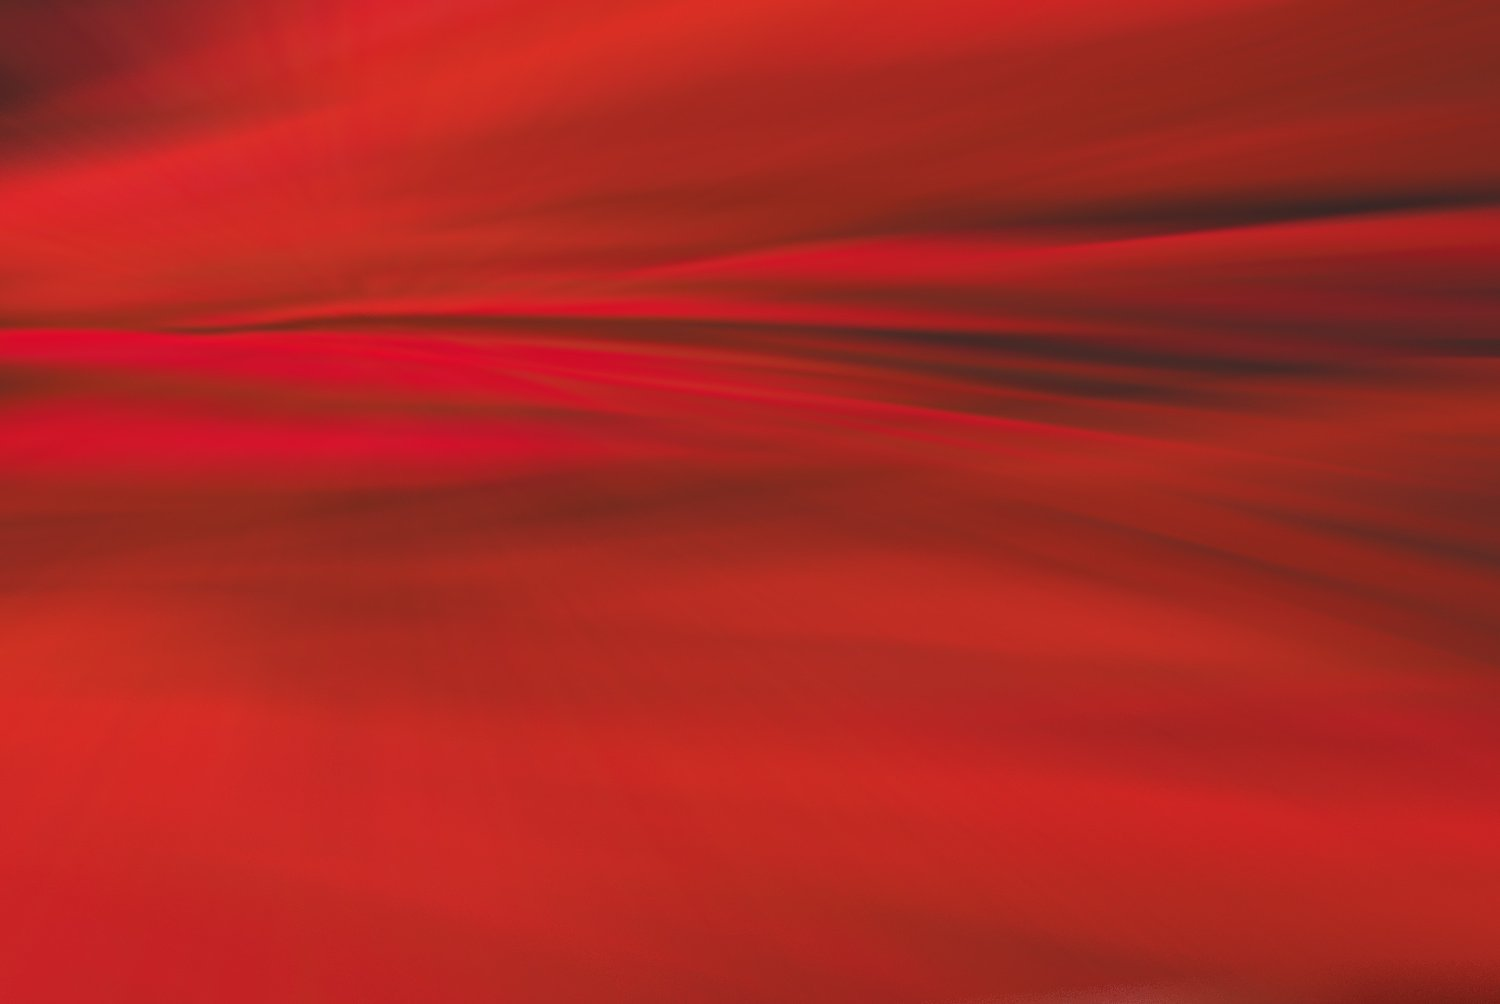 Free Red Backdrop Stock Photo Freeimages Com